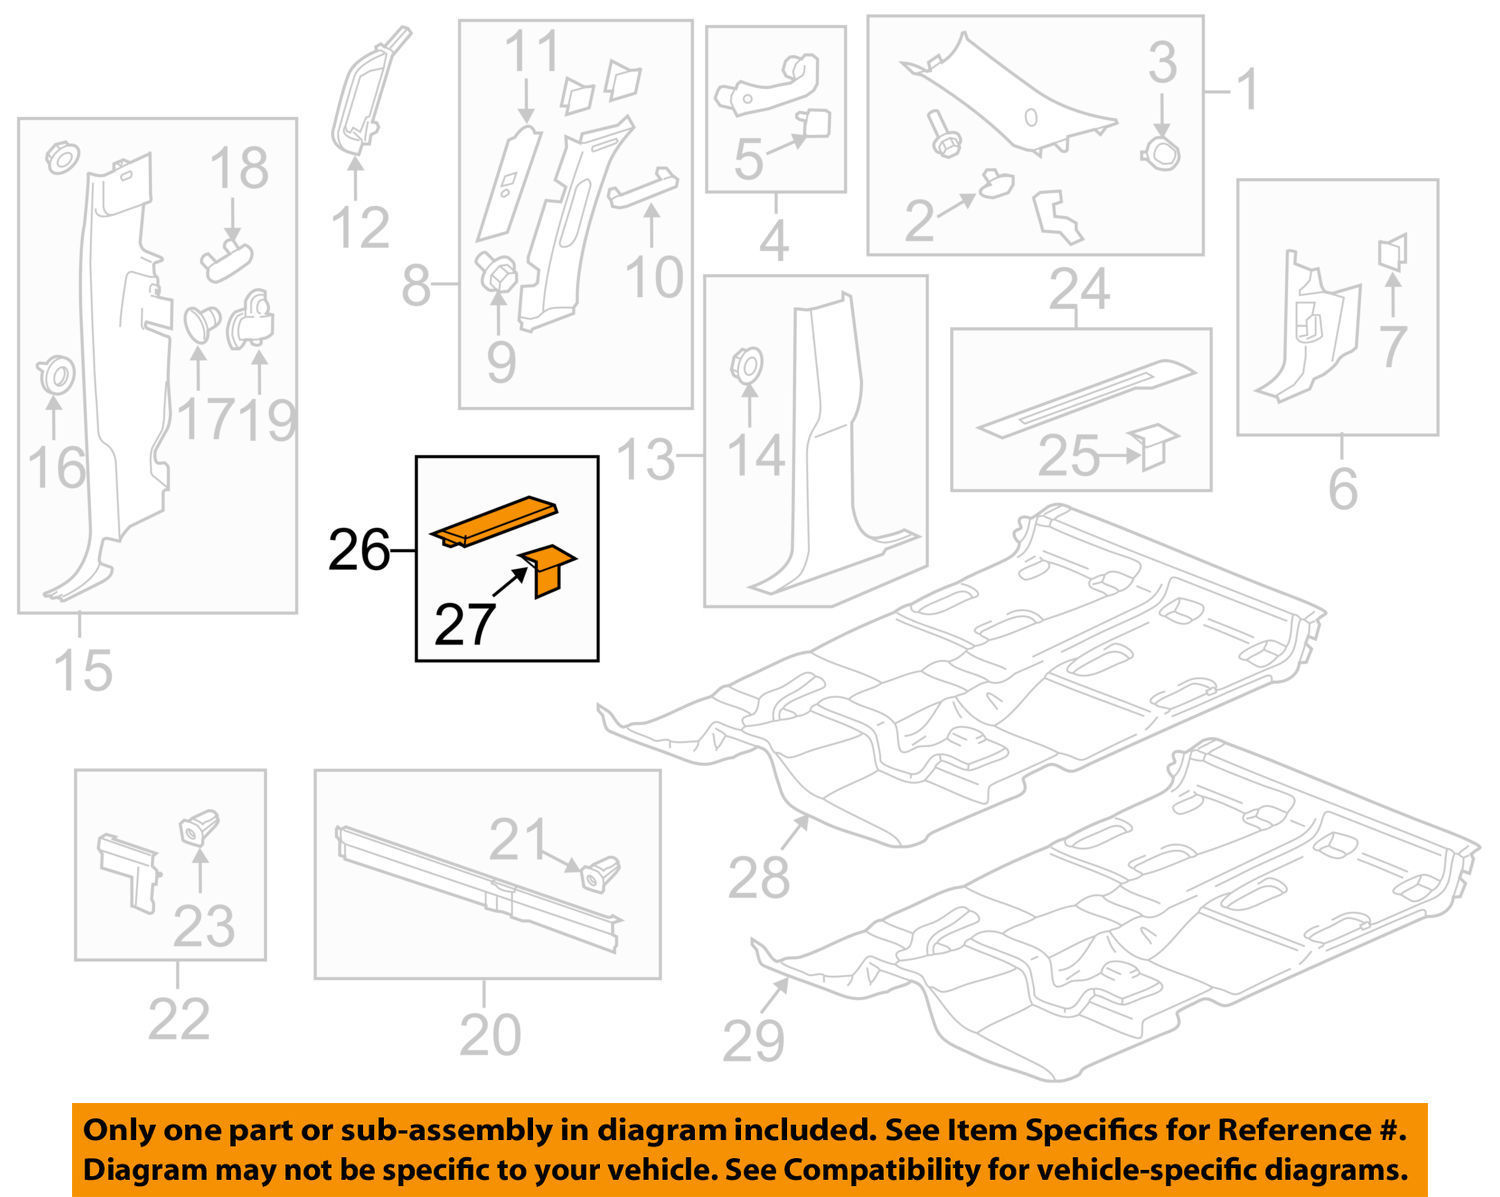 Jermaines Store On Buy Auto Parts Car Truck Gm Diagram Oem Interior Rear Sill Plate 25844290